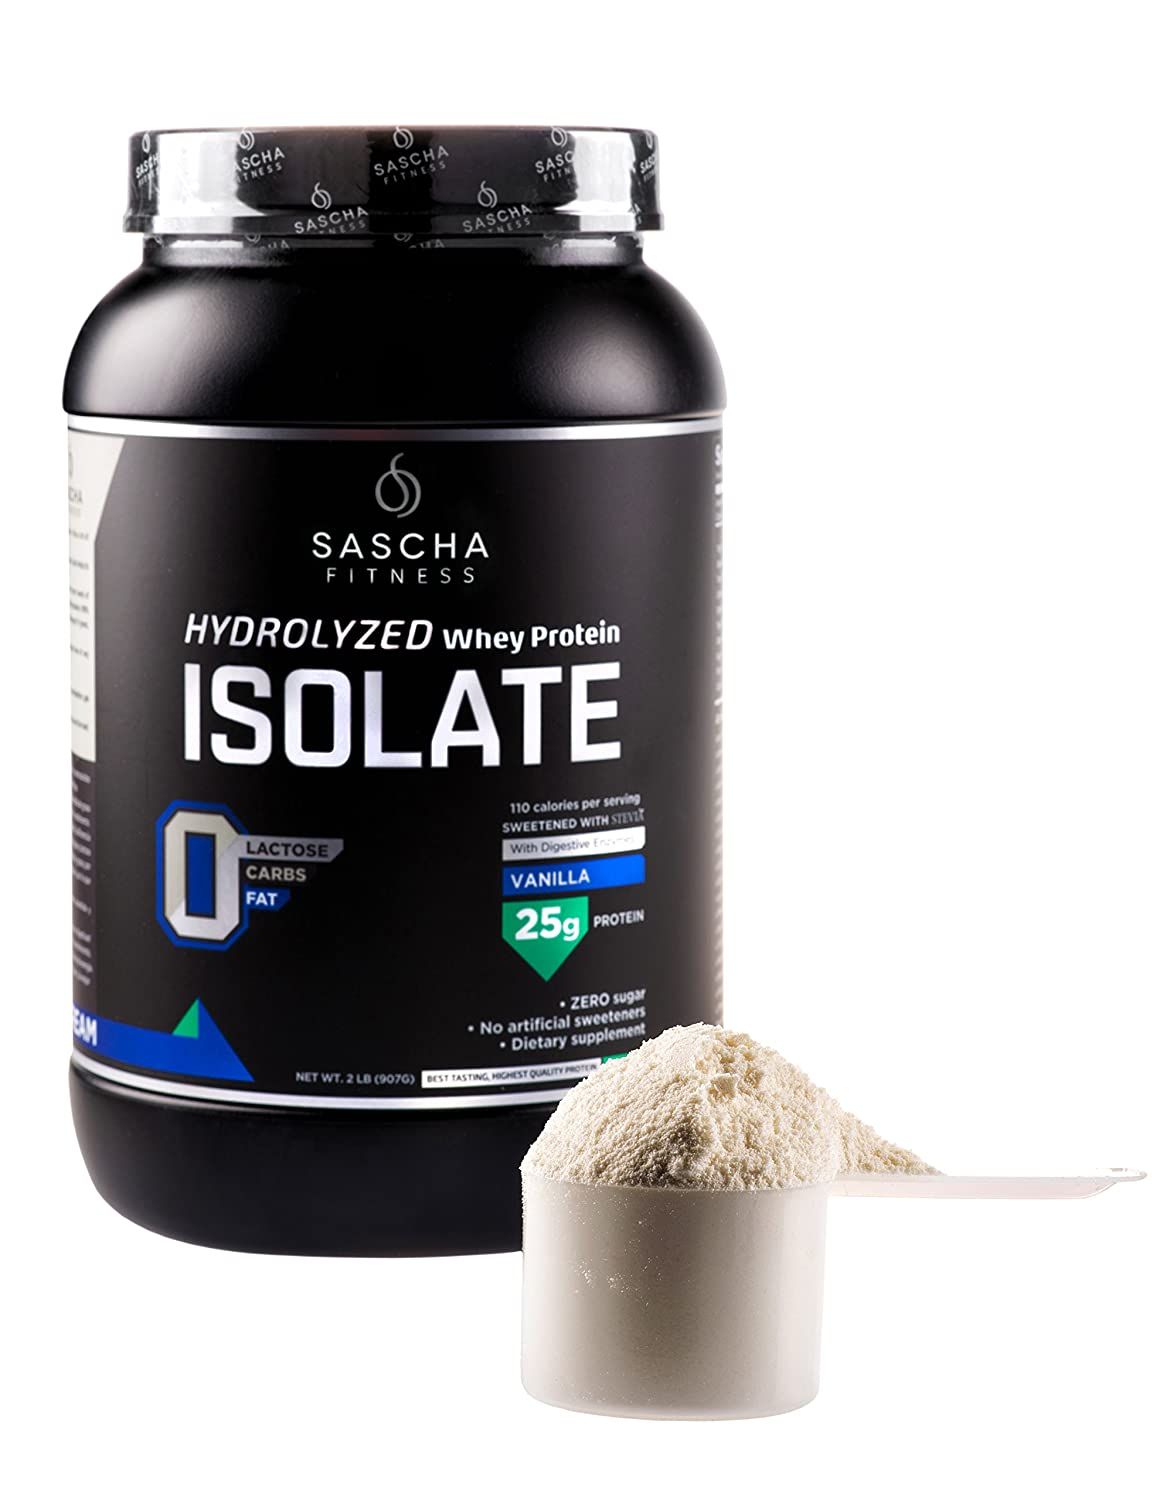 Sascha Fitness Hydrolyzed Whey Protein Isolate,100% Grass-Fed (2 Pounds, Vanilla)